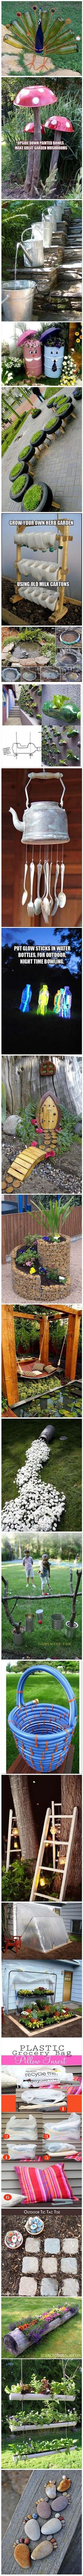 Simple Outdoor Ideas That Are Borderline Genius – 25 Pics | Mommy Has A Potty MouthMommy Has A Potty Mouth: